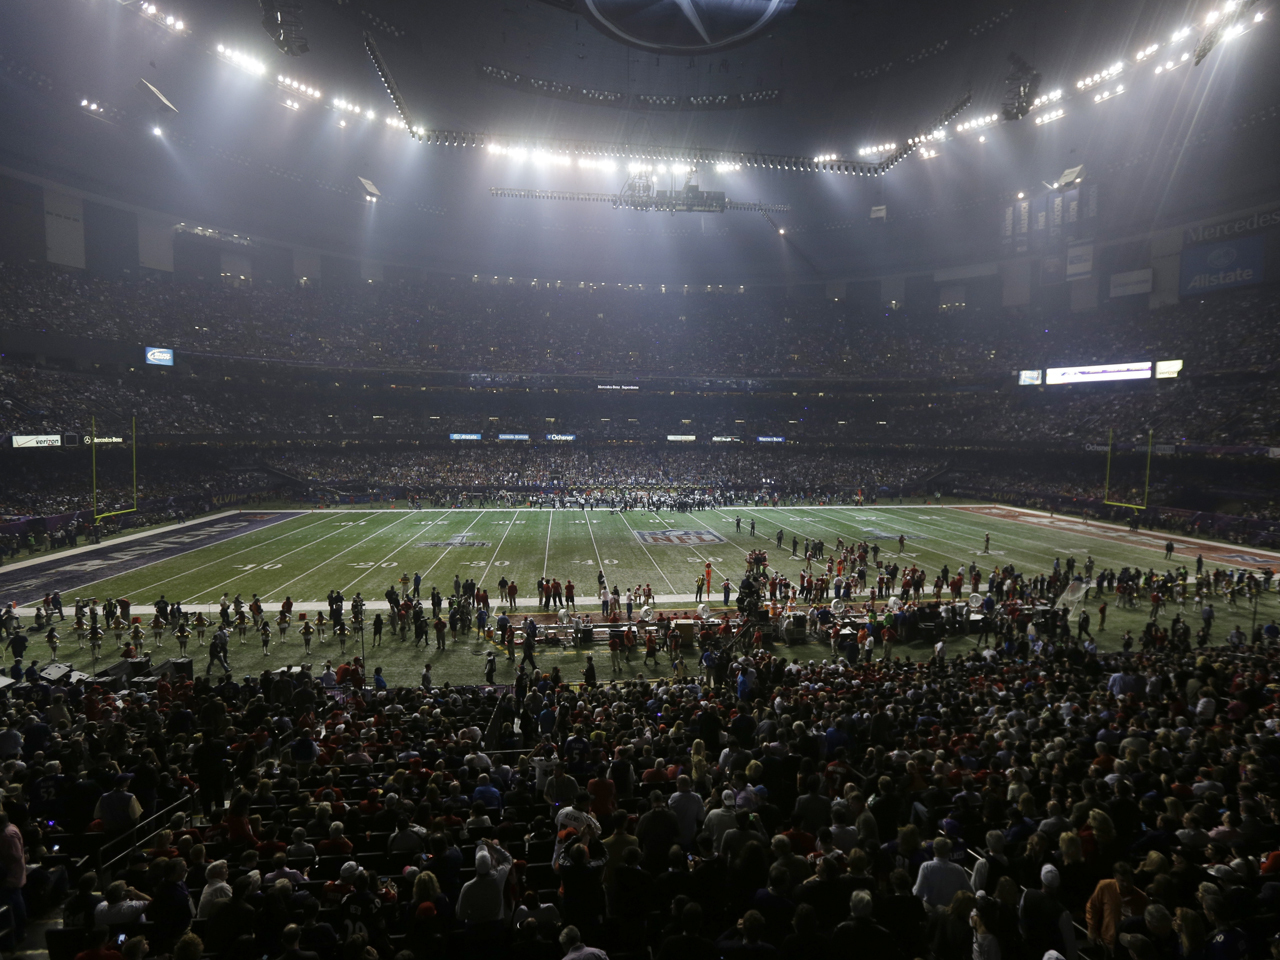 Super Bowl power outage: What went wrong? - CBS News